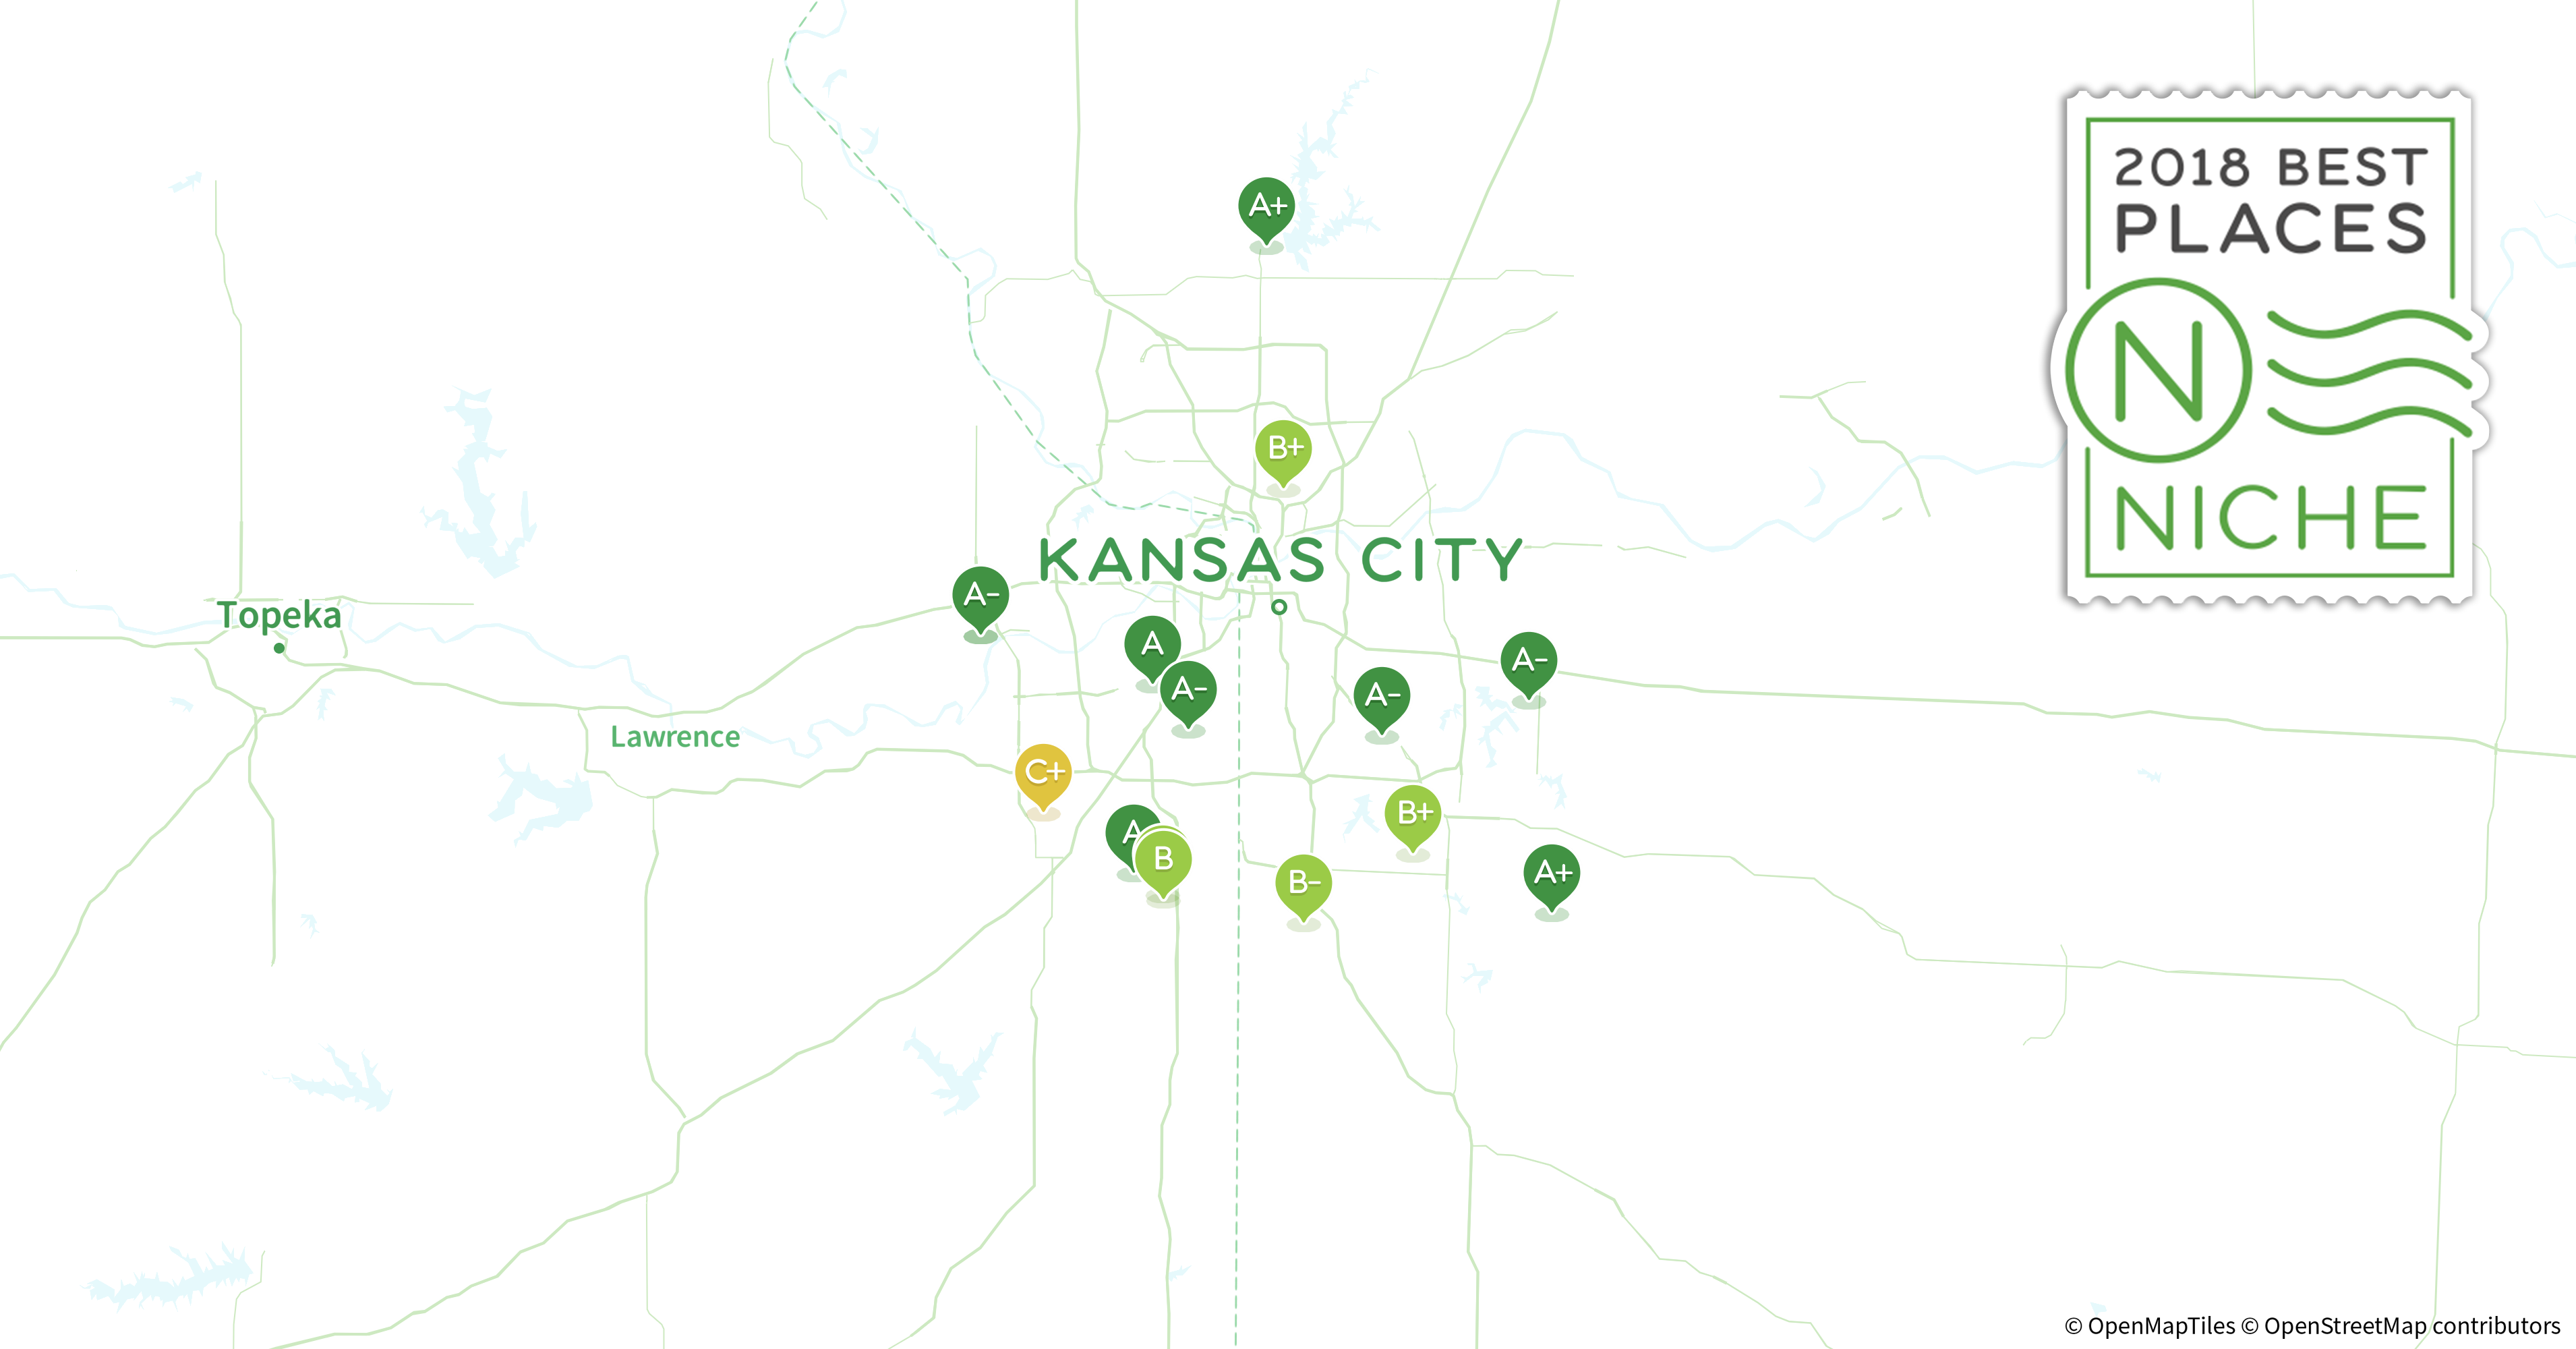 2018 Safest Neighborhoods in Kansas City Area - Niche